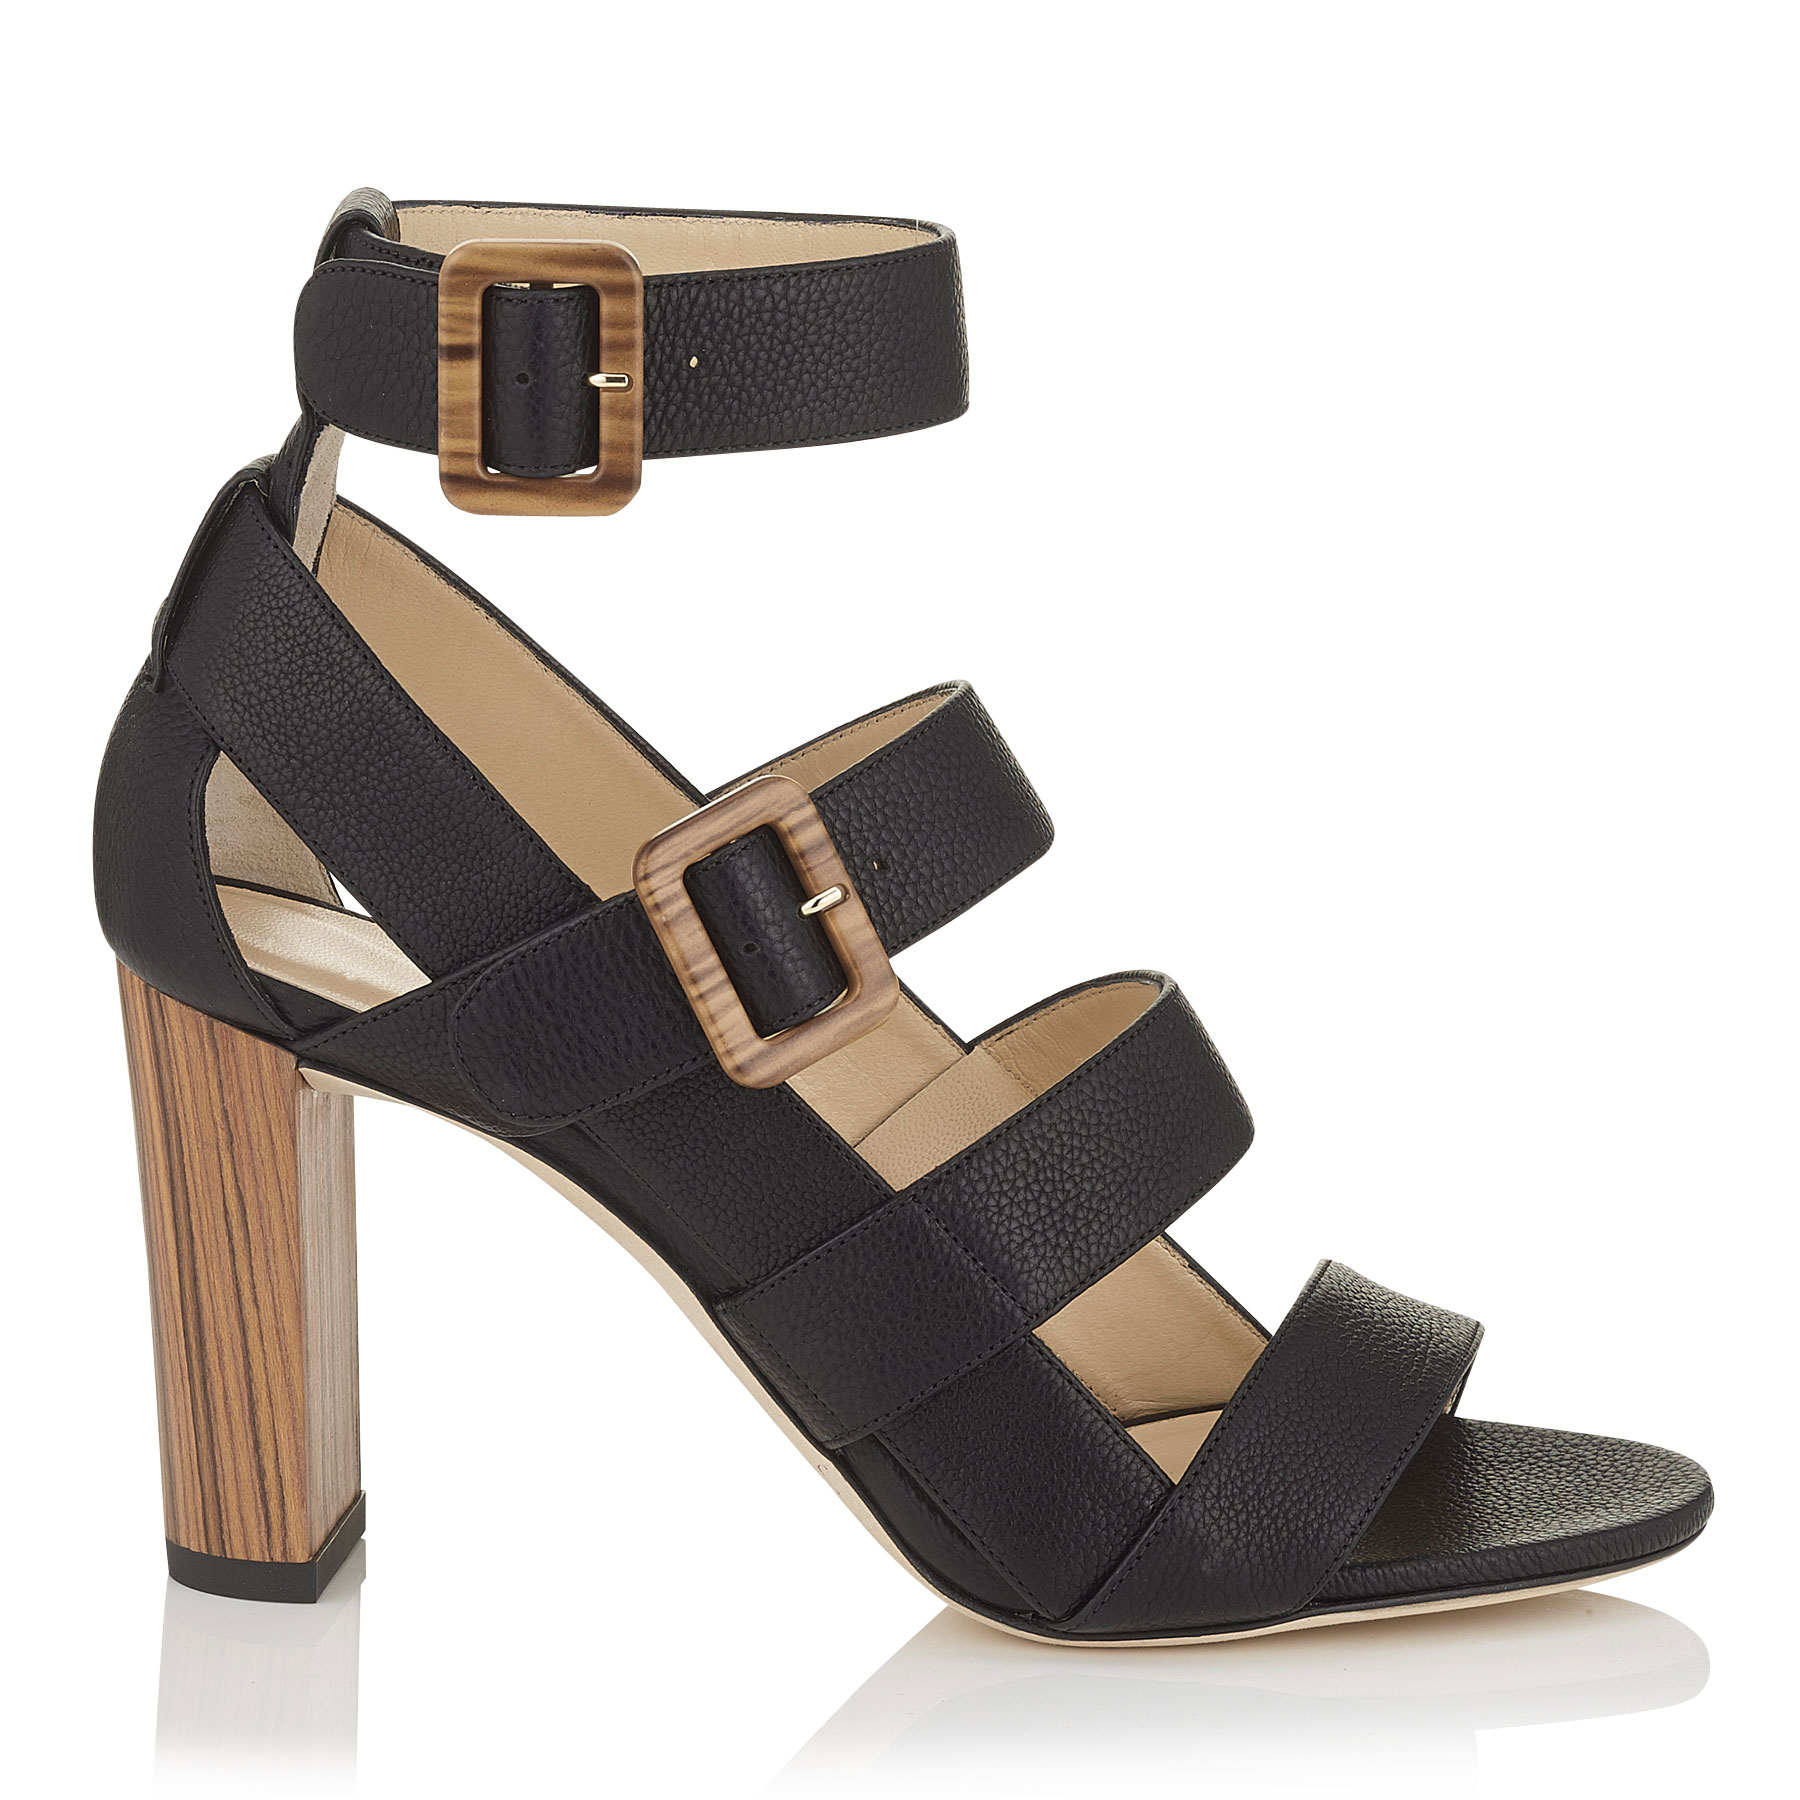 MAYA 85 Black Grainy Leather and Wood Sandals